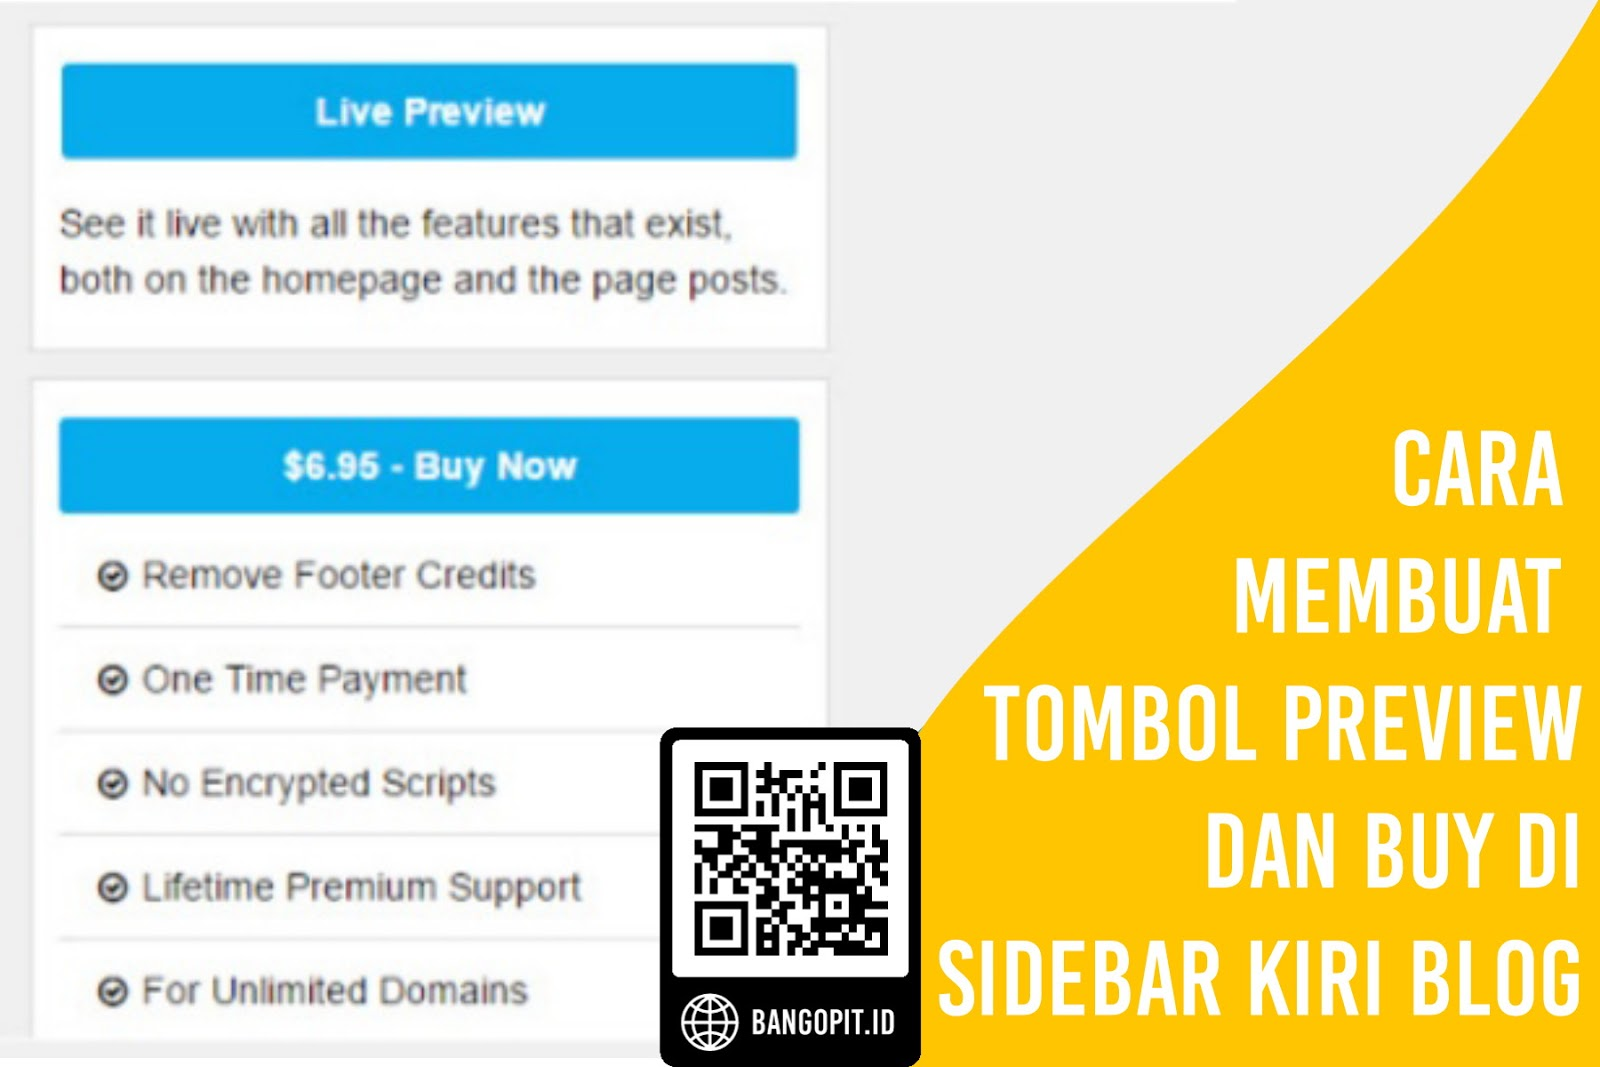 Cara Membuat Tombol Preview dan Buy di Sidebar Kiri Blog